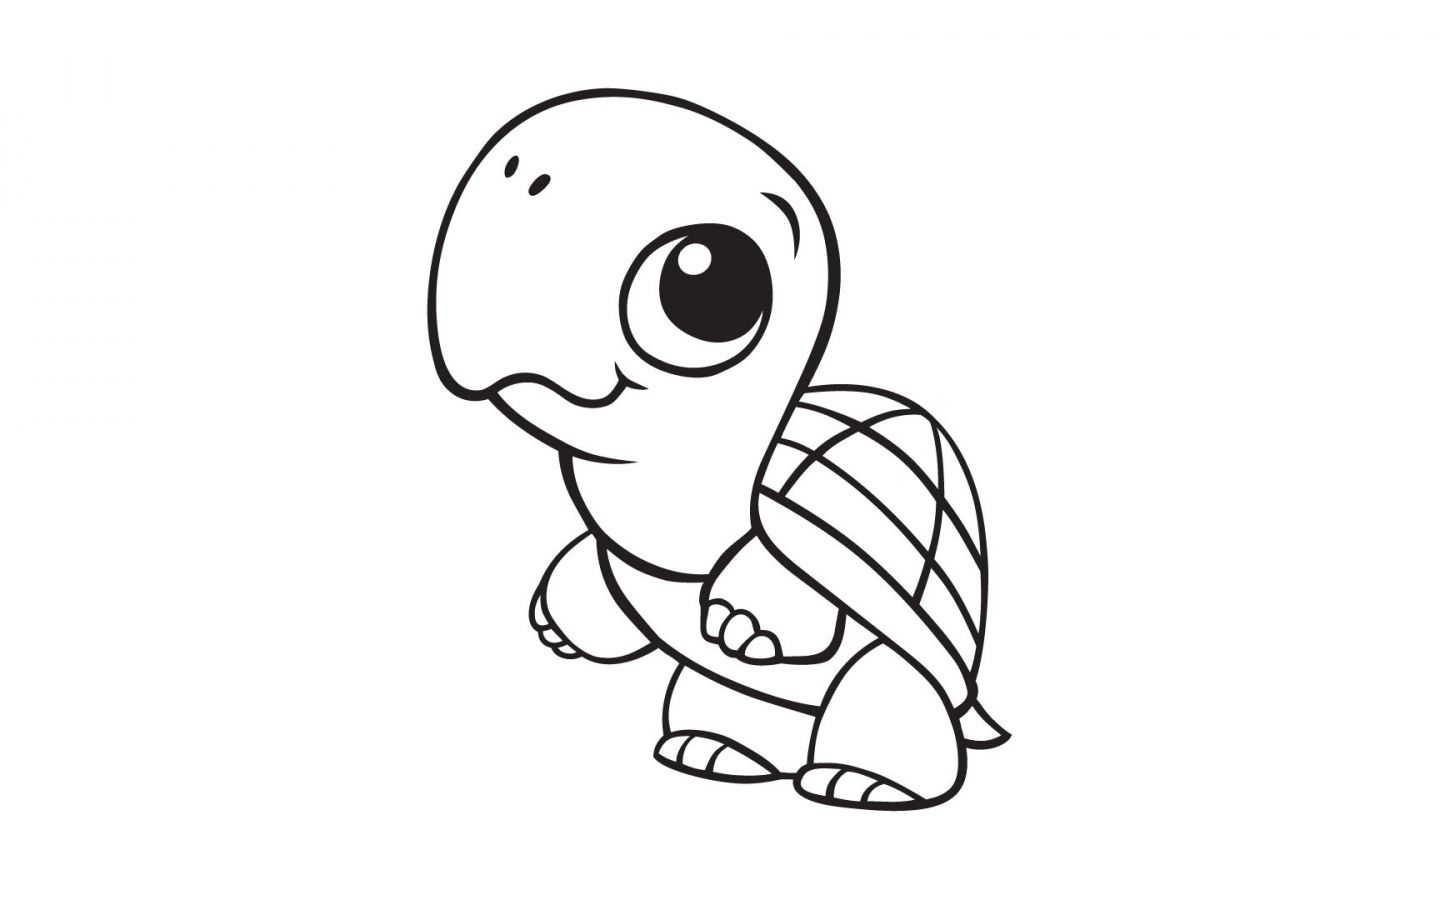 cute animal colouring pages - Google Search | Anime | Pinterest